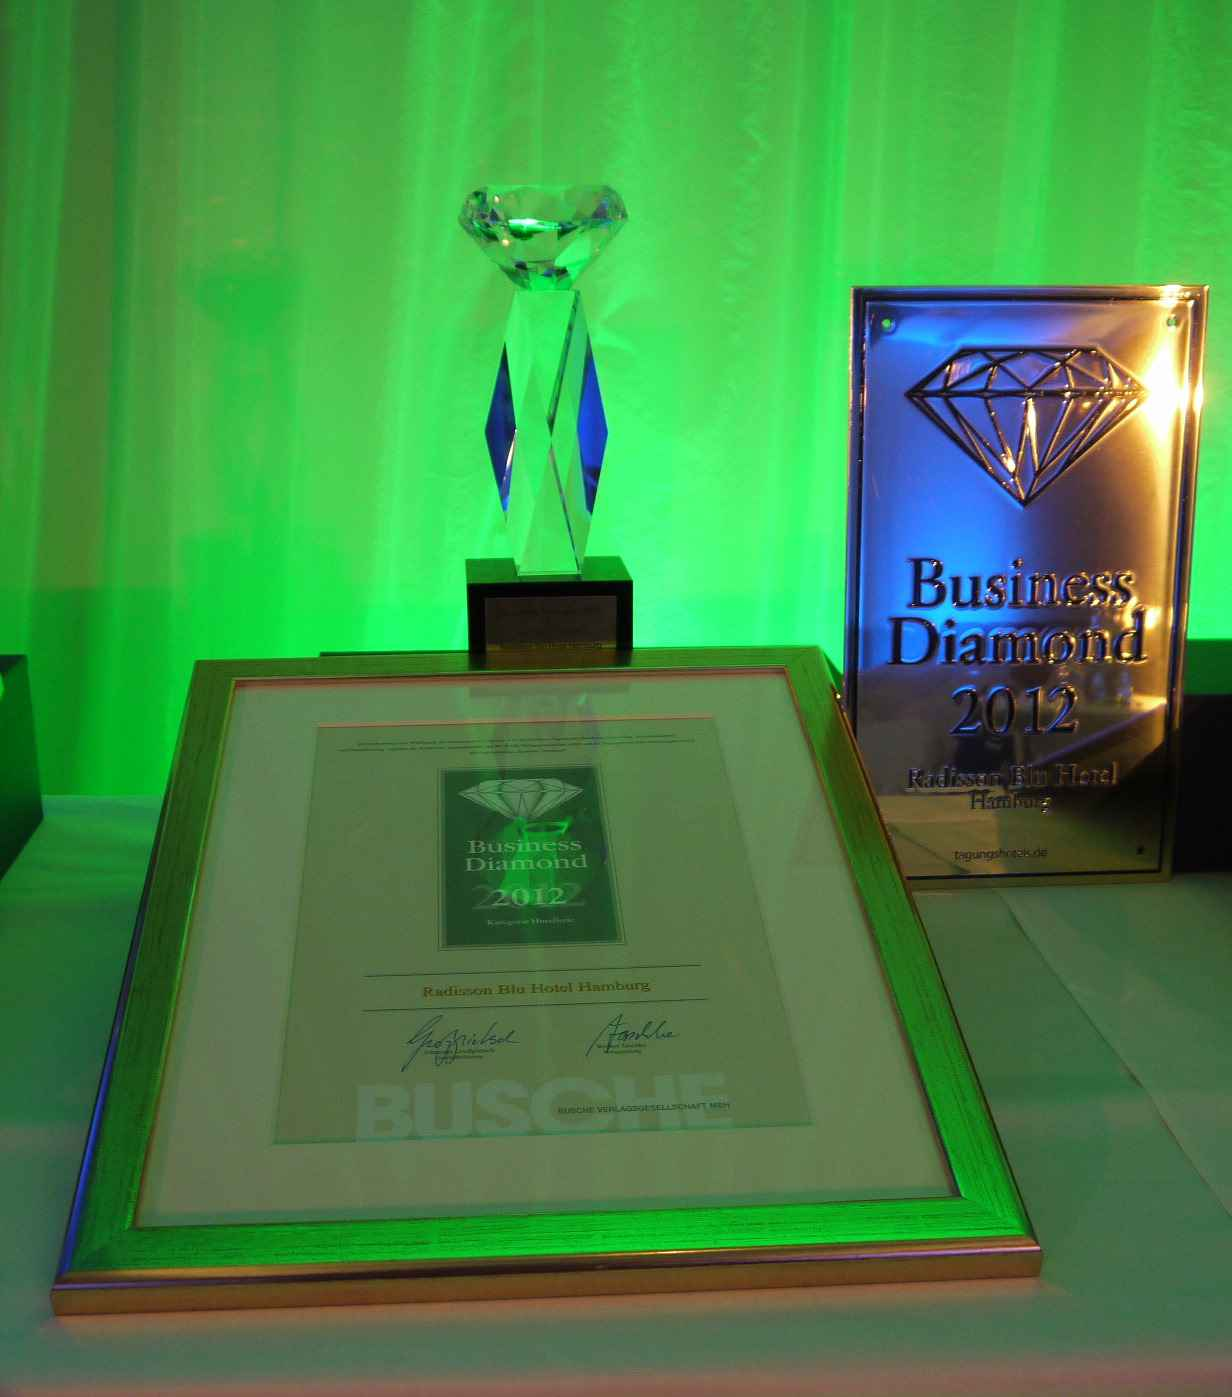 Business Diamond Award Radisson Blu Hotel Hamburg 2012